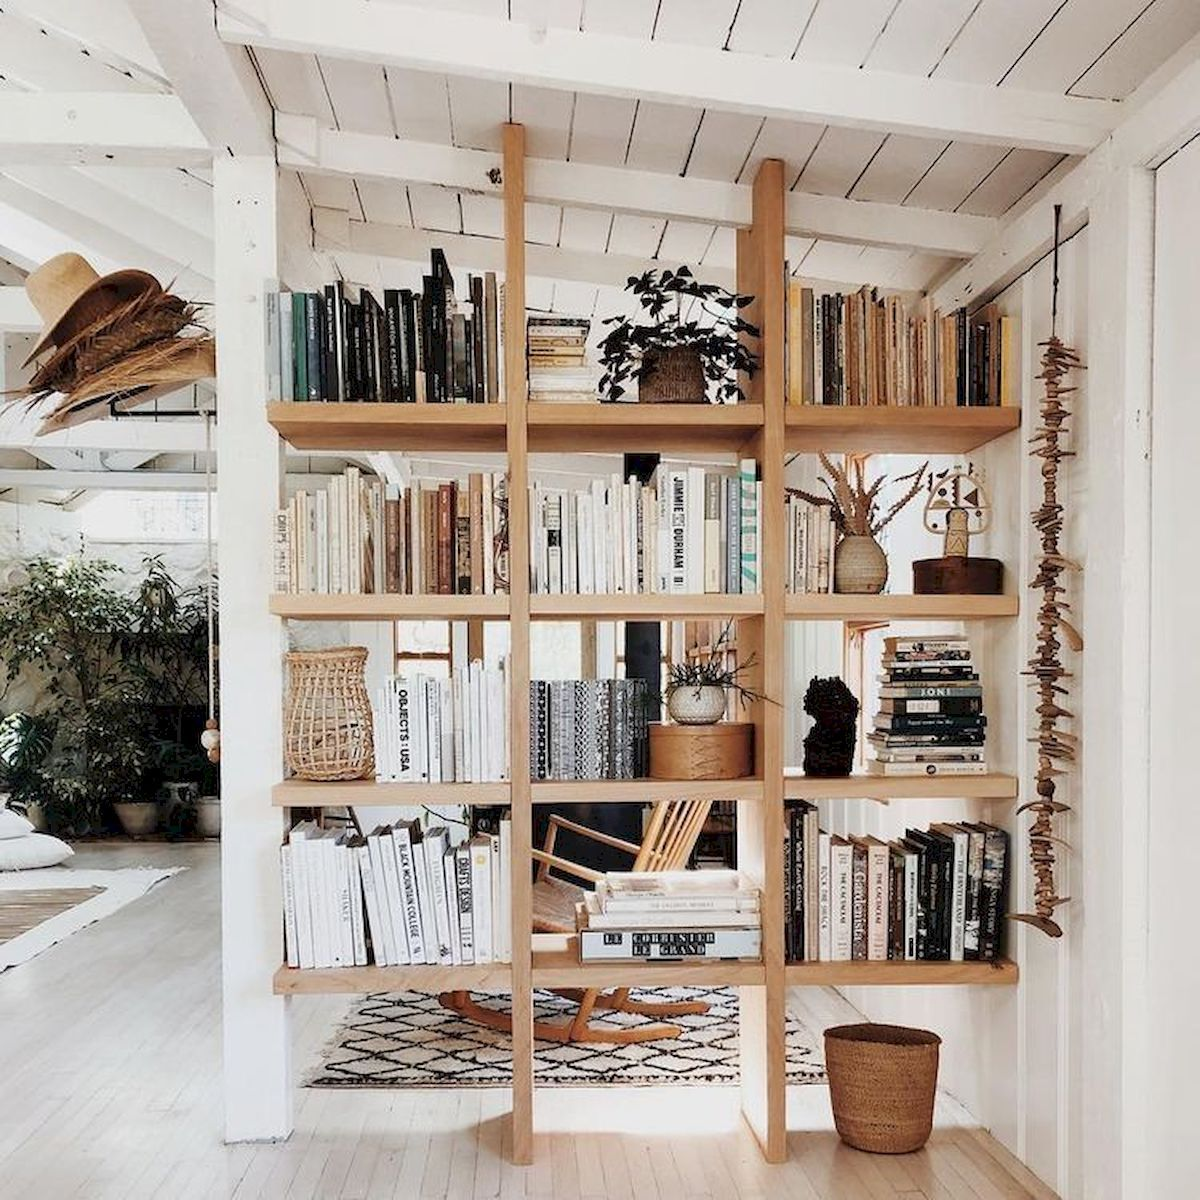 Separate room by bookcase